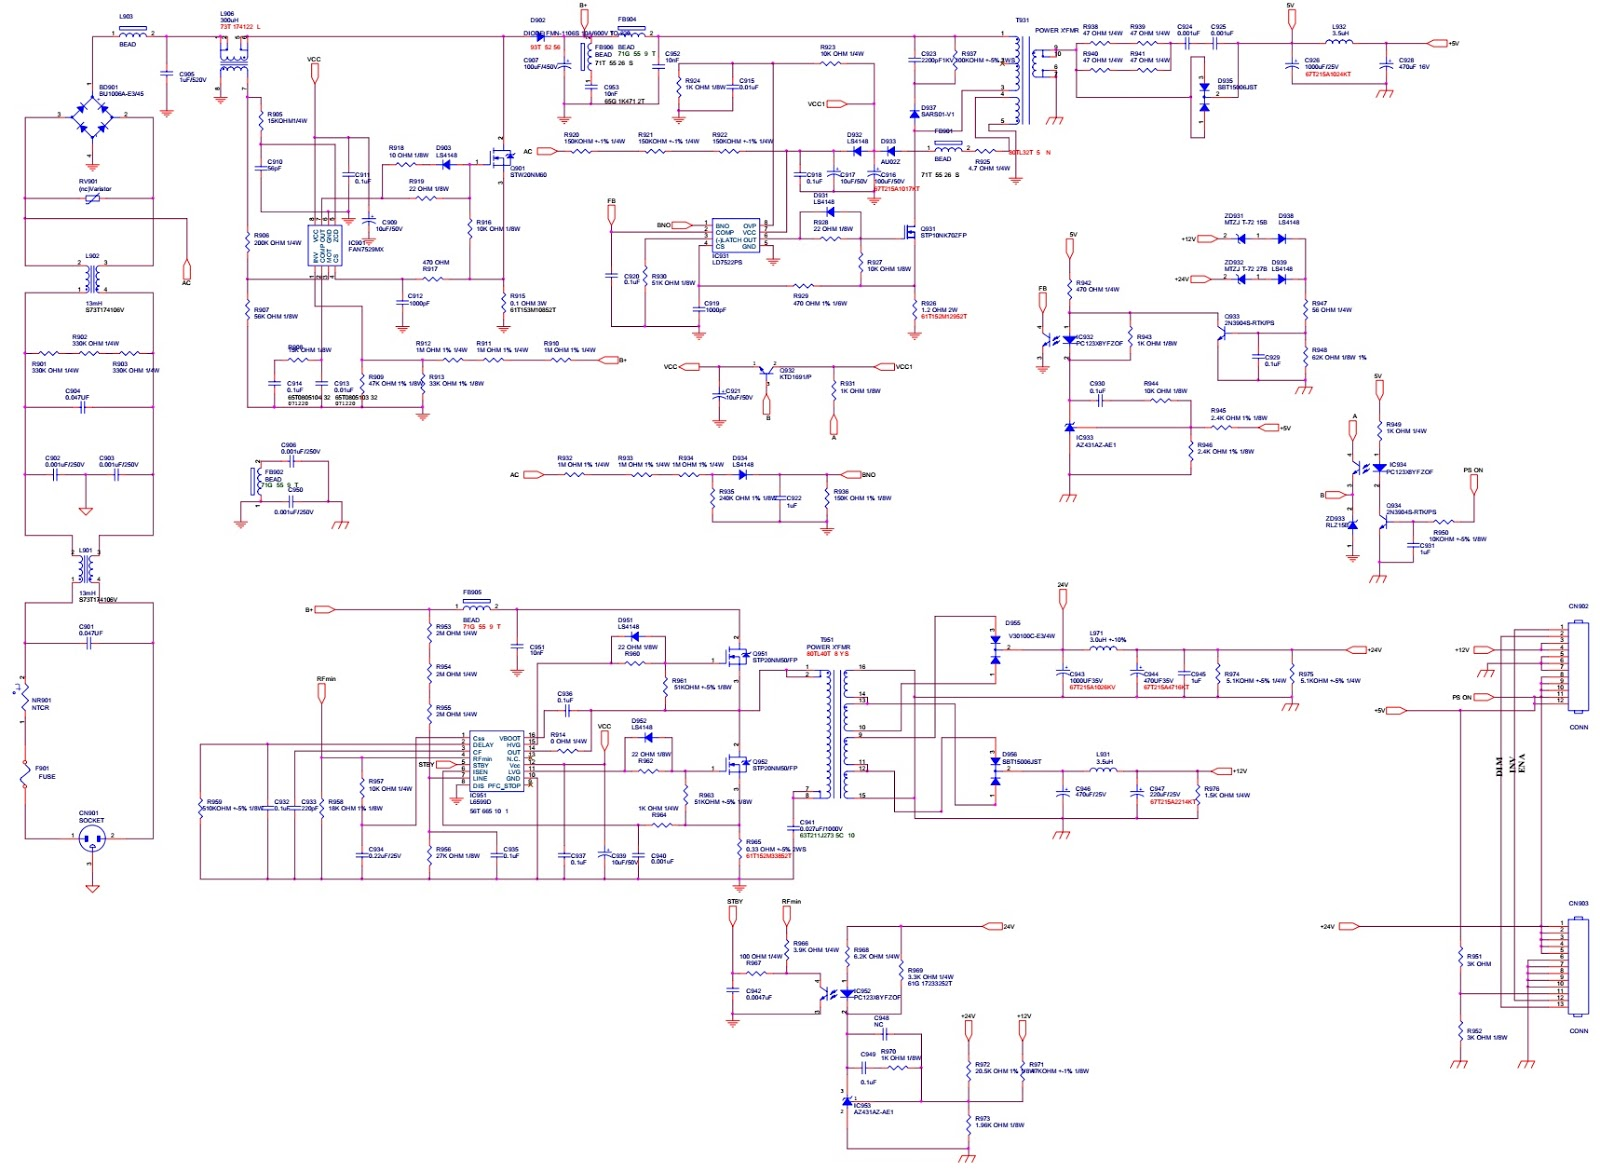 insignia tv wiring diagram wiring diagram insignia tv wiring diagram [ 1600 x 1172 Pixel ]